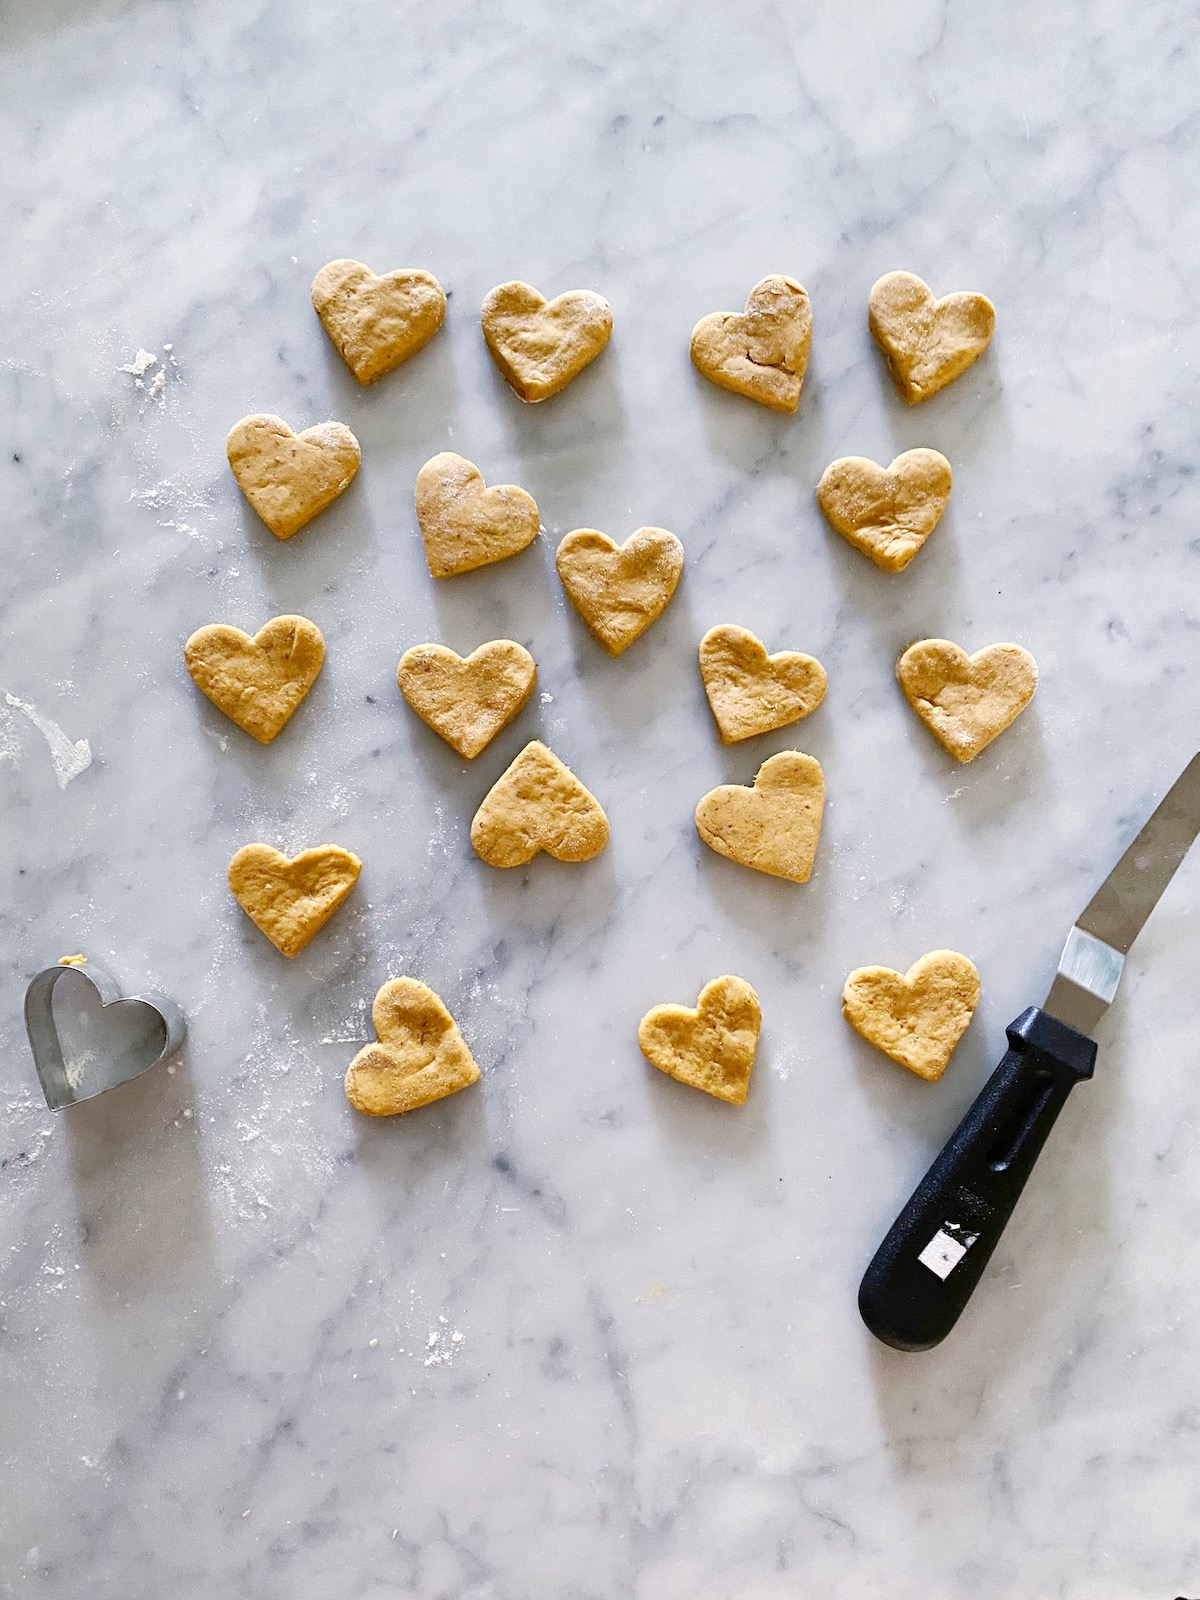 Homemade Peanut Butter Dog Treats recipe: packed with peanut butter, pumpkin, and flax, these healthy treats are good for your pup and fun to make!